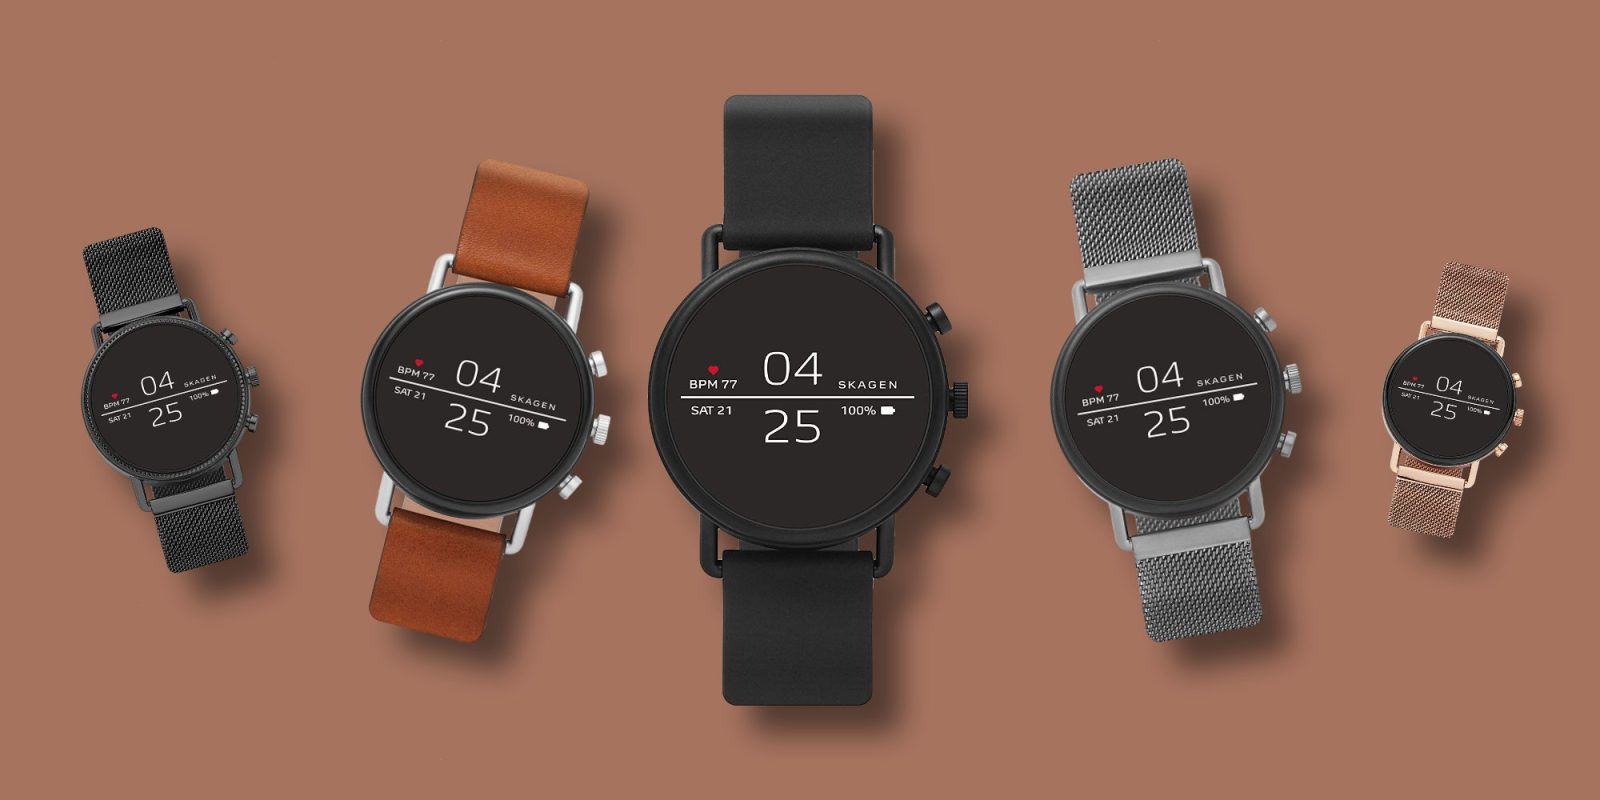 Skagen Falster 2 Smartwatch runs Wear OS + hits Amazon low of $179 (Save 40%)